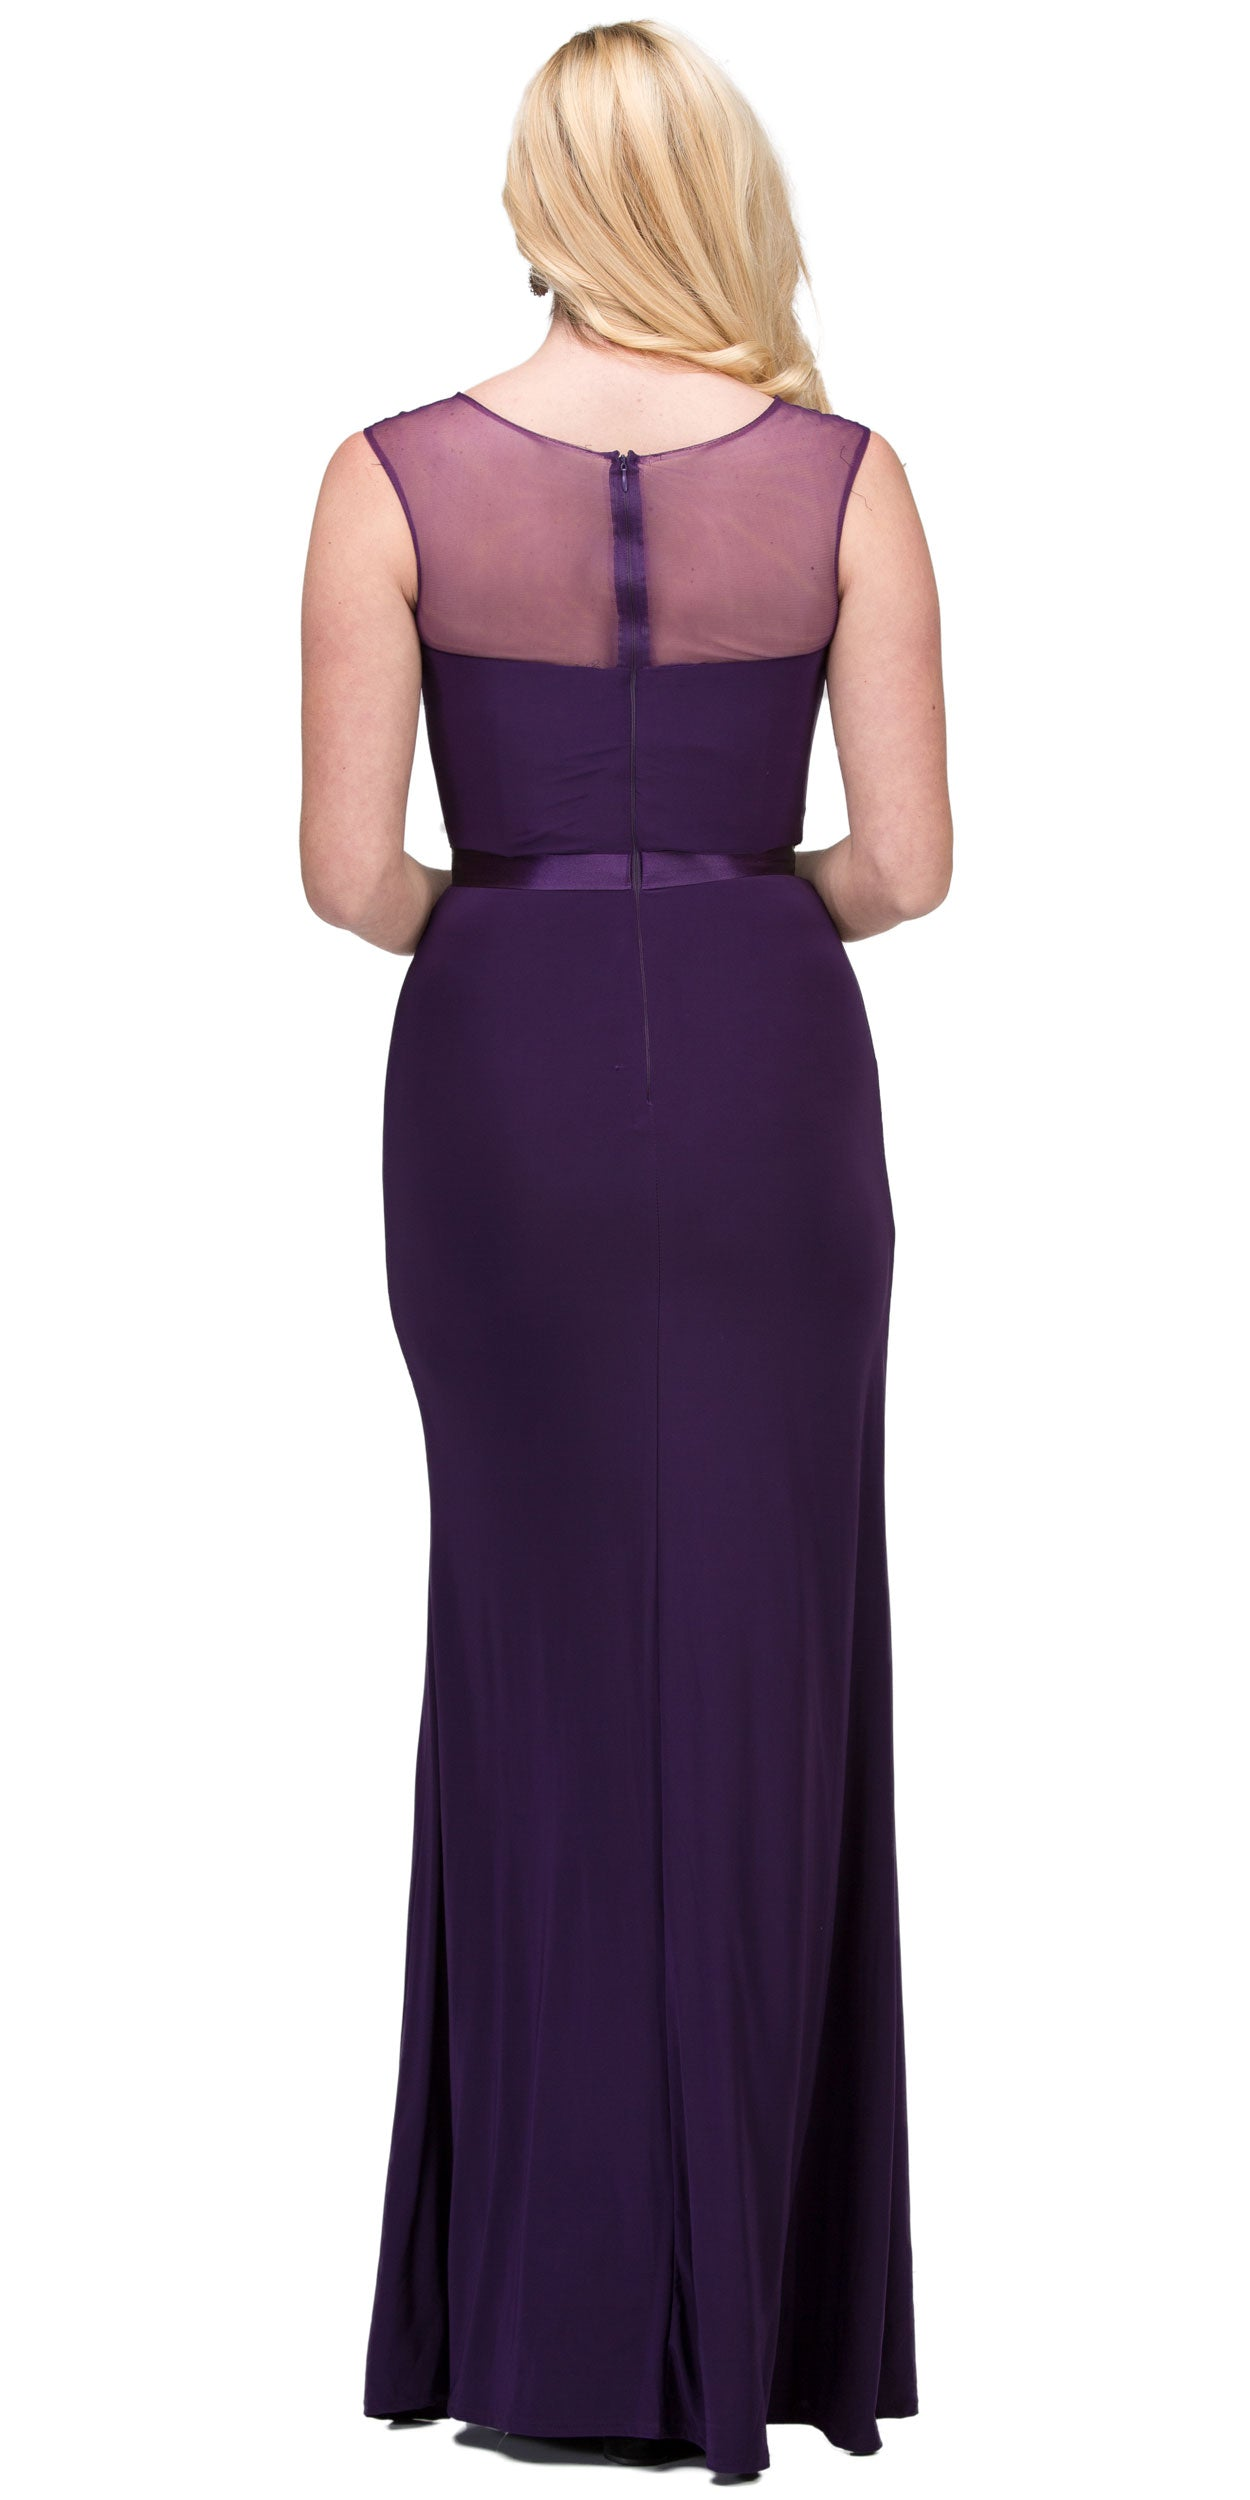 Image of Round Neck Bejeweled Waist Long Formal Bridesmaid Dress in Egg Plant